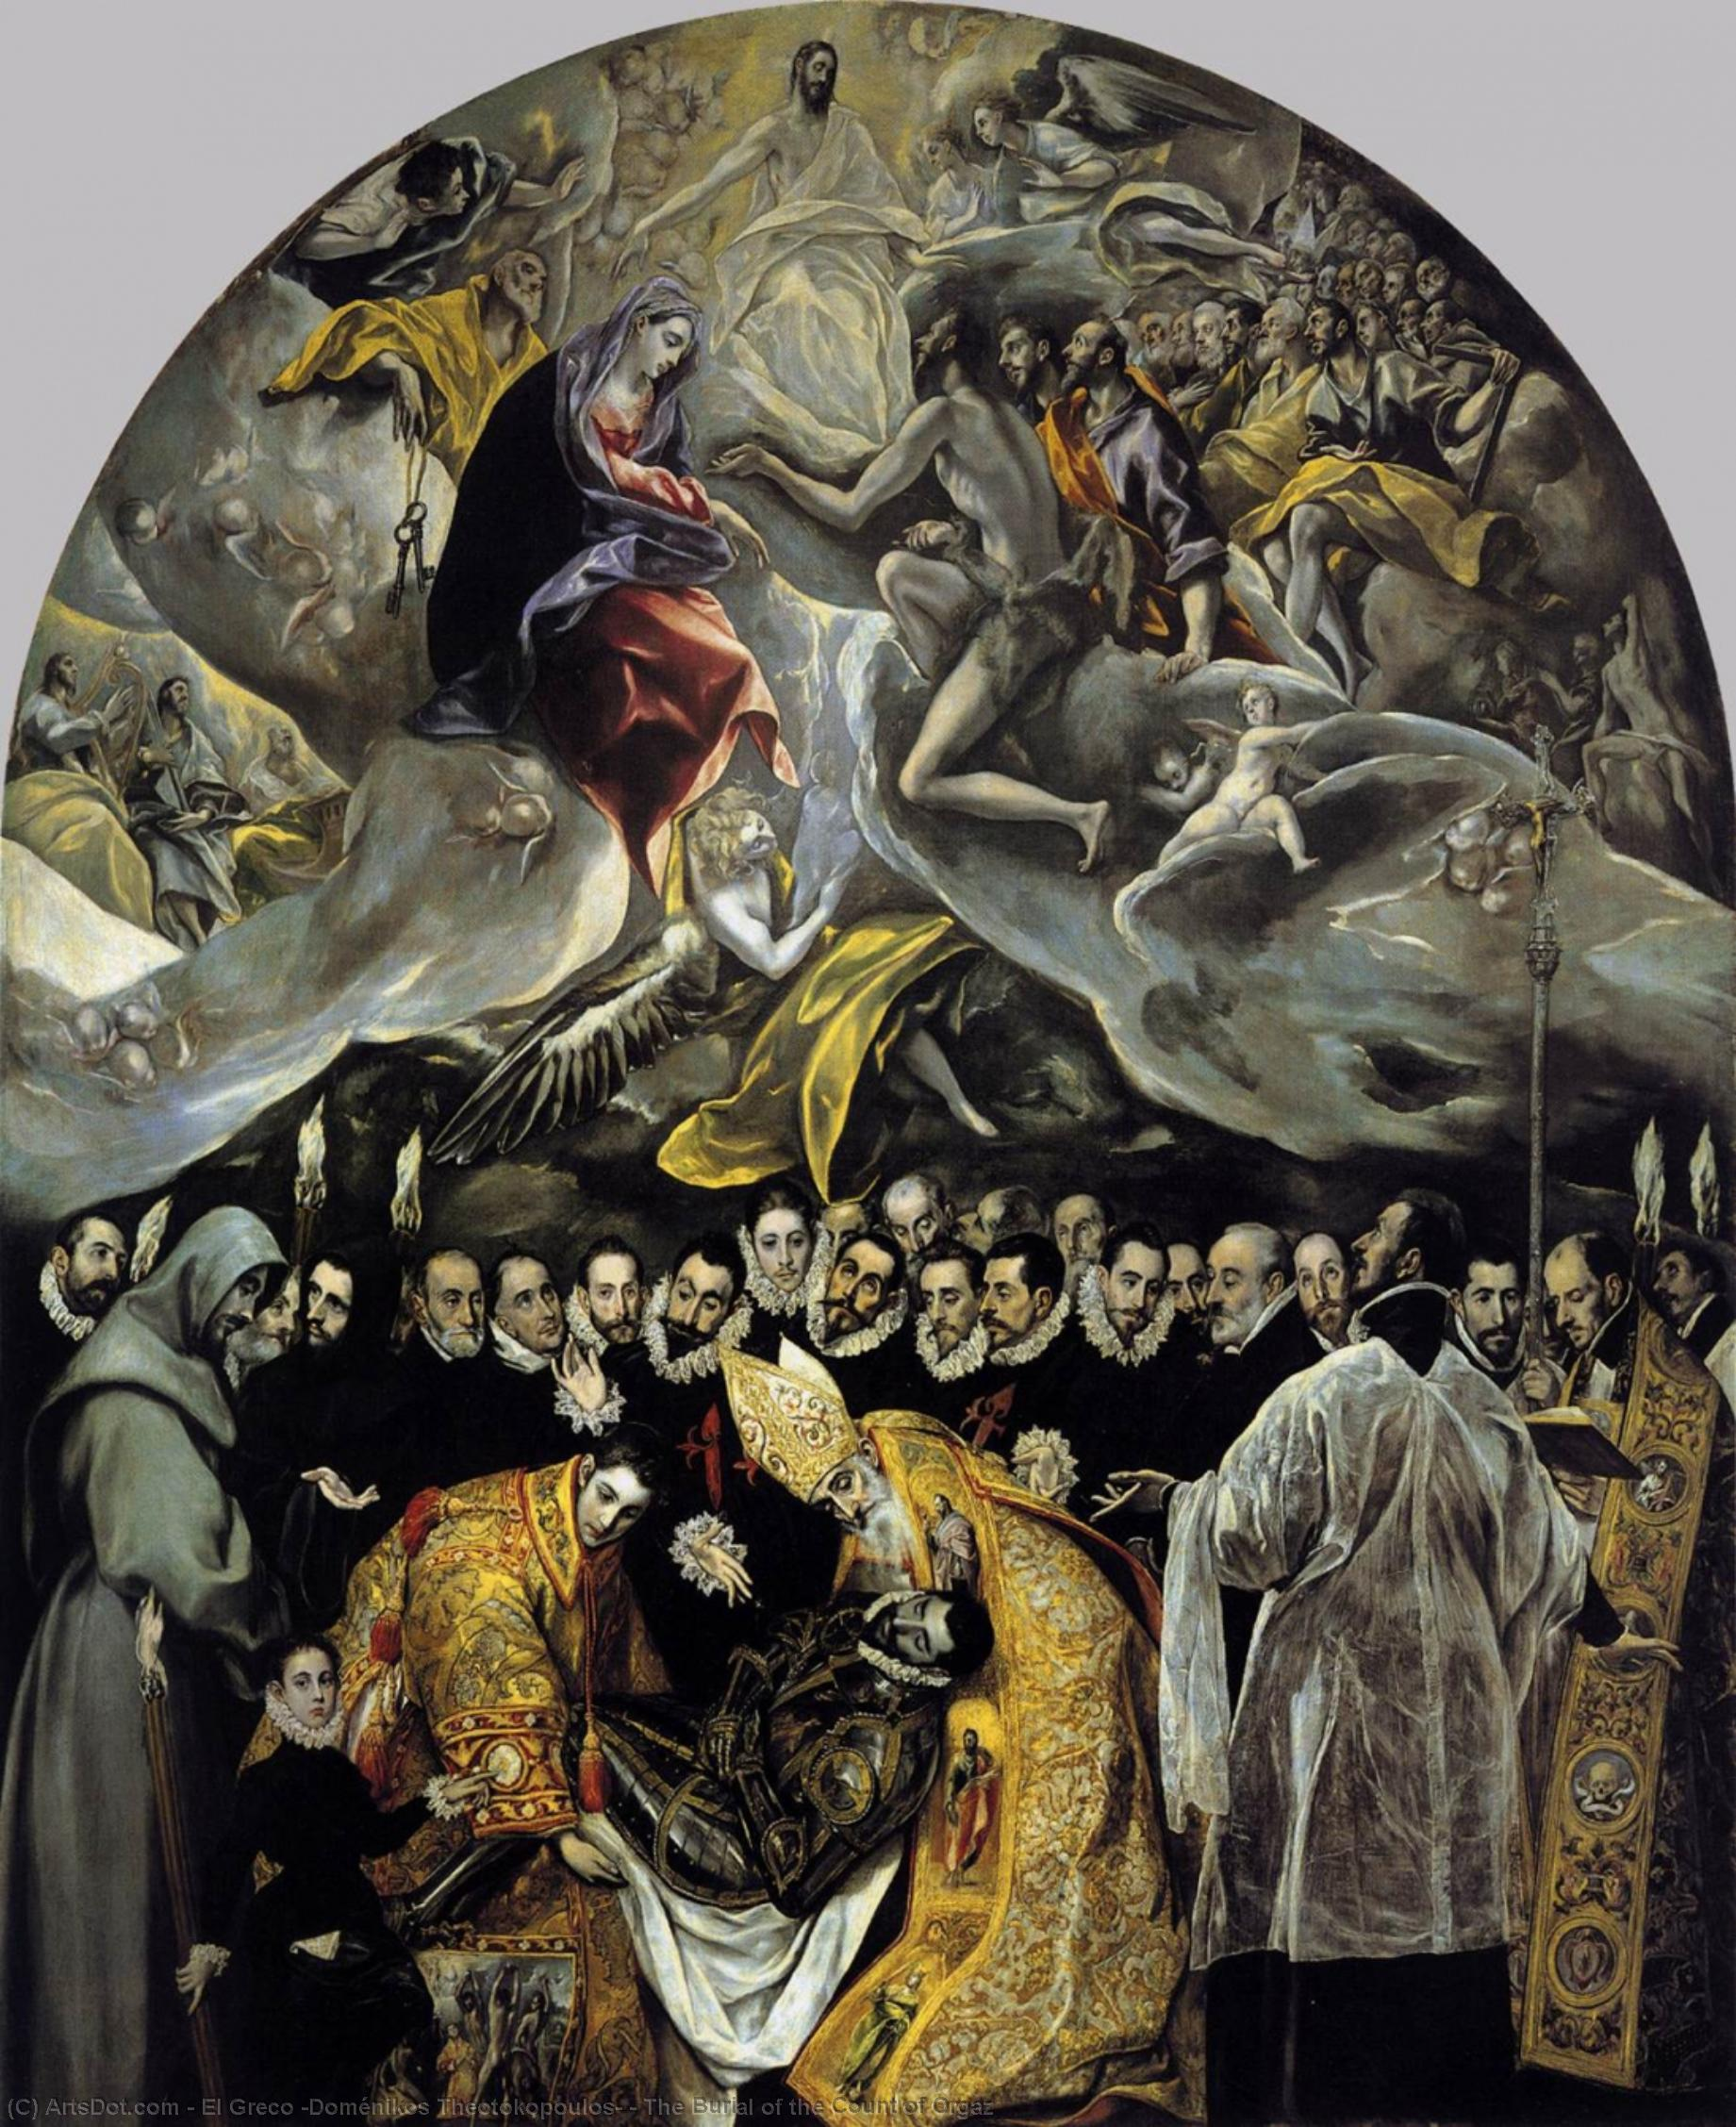 The Burial of the Count of Orgaz, 1586 by El Greco (Doménikos Theotokopoulos) (1541-1614, Greece) | Reproductions El Greco (Doménikos Theotokopoulos) | ArtsDot.com